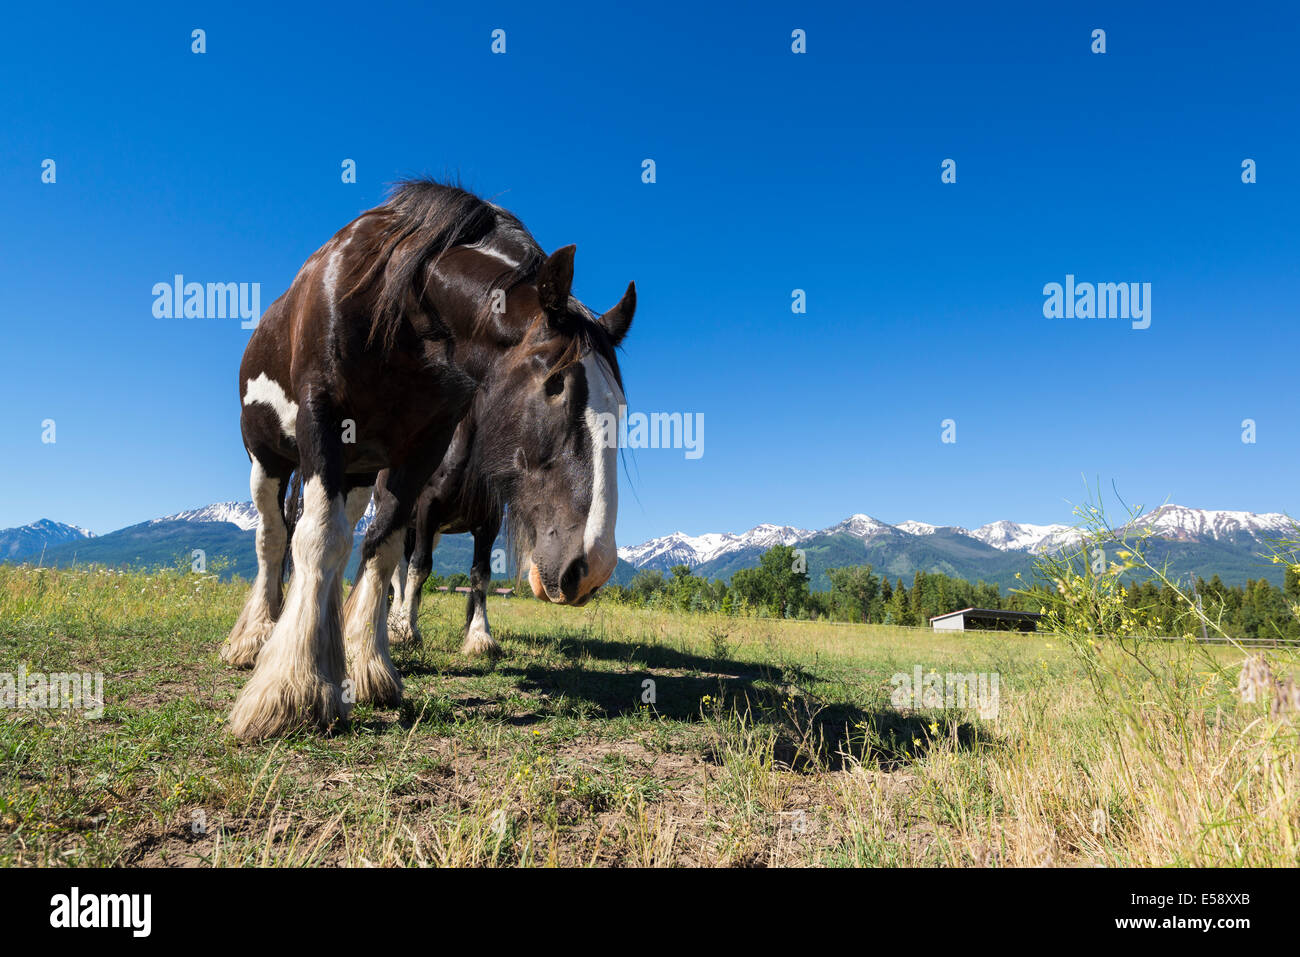 One-eyed Black Clydesdale horse, Wallowa Valley, Oregon. - Stock Image